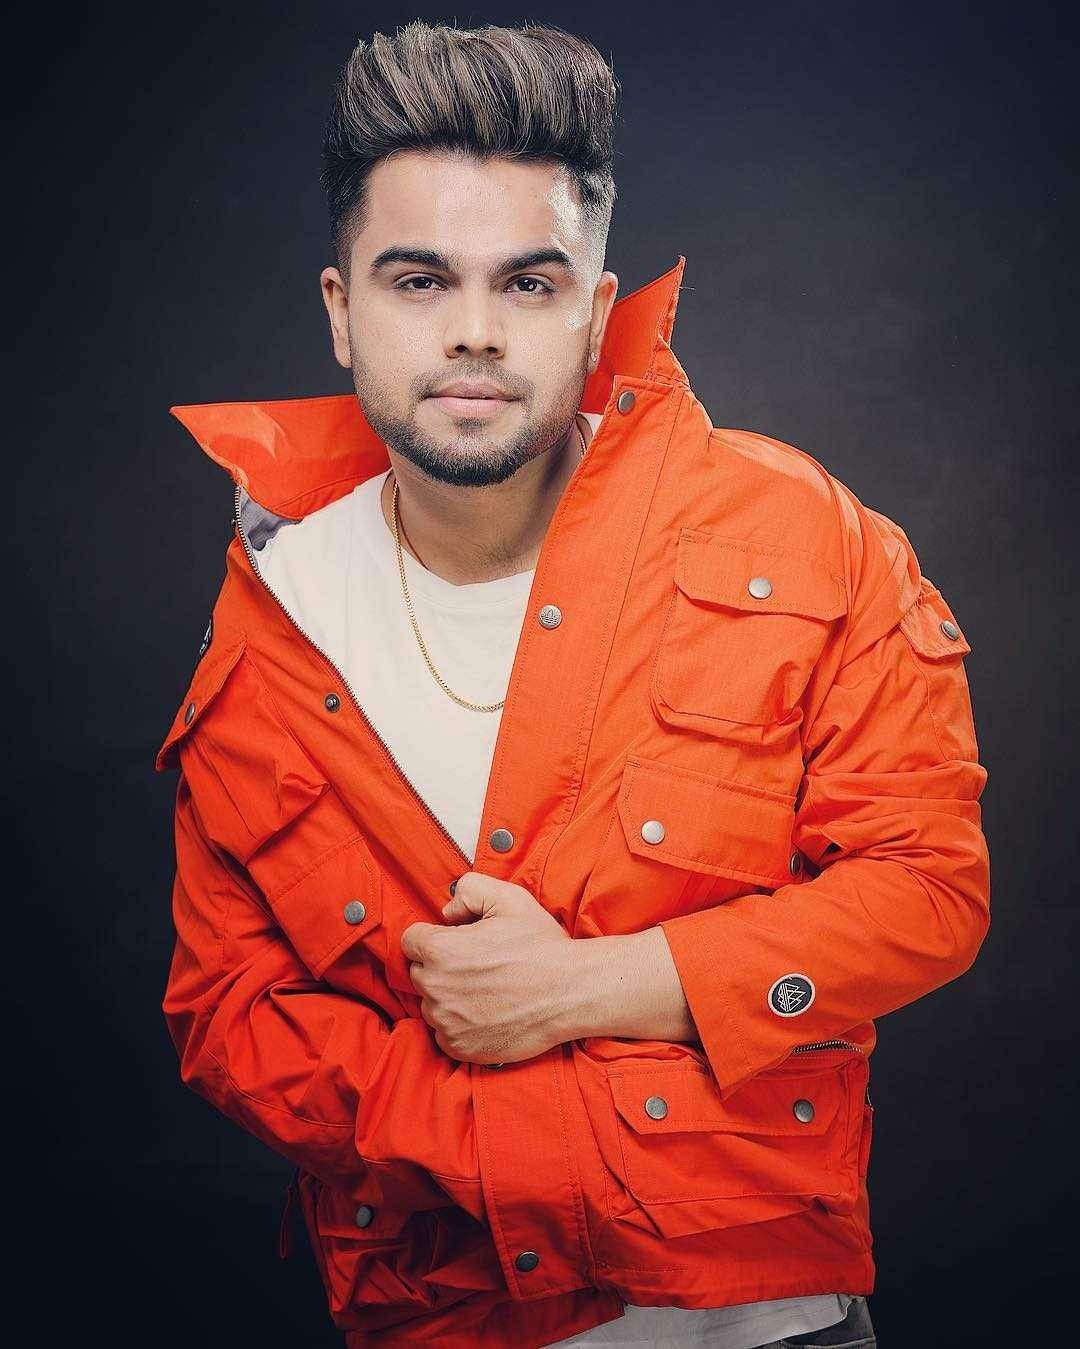 Pin By Meera Kumari On Akhil Swag Boys Red Leather Jacket Boy Photography Poses